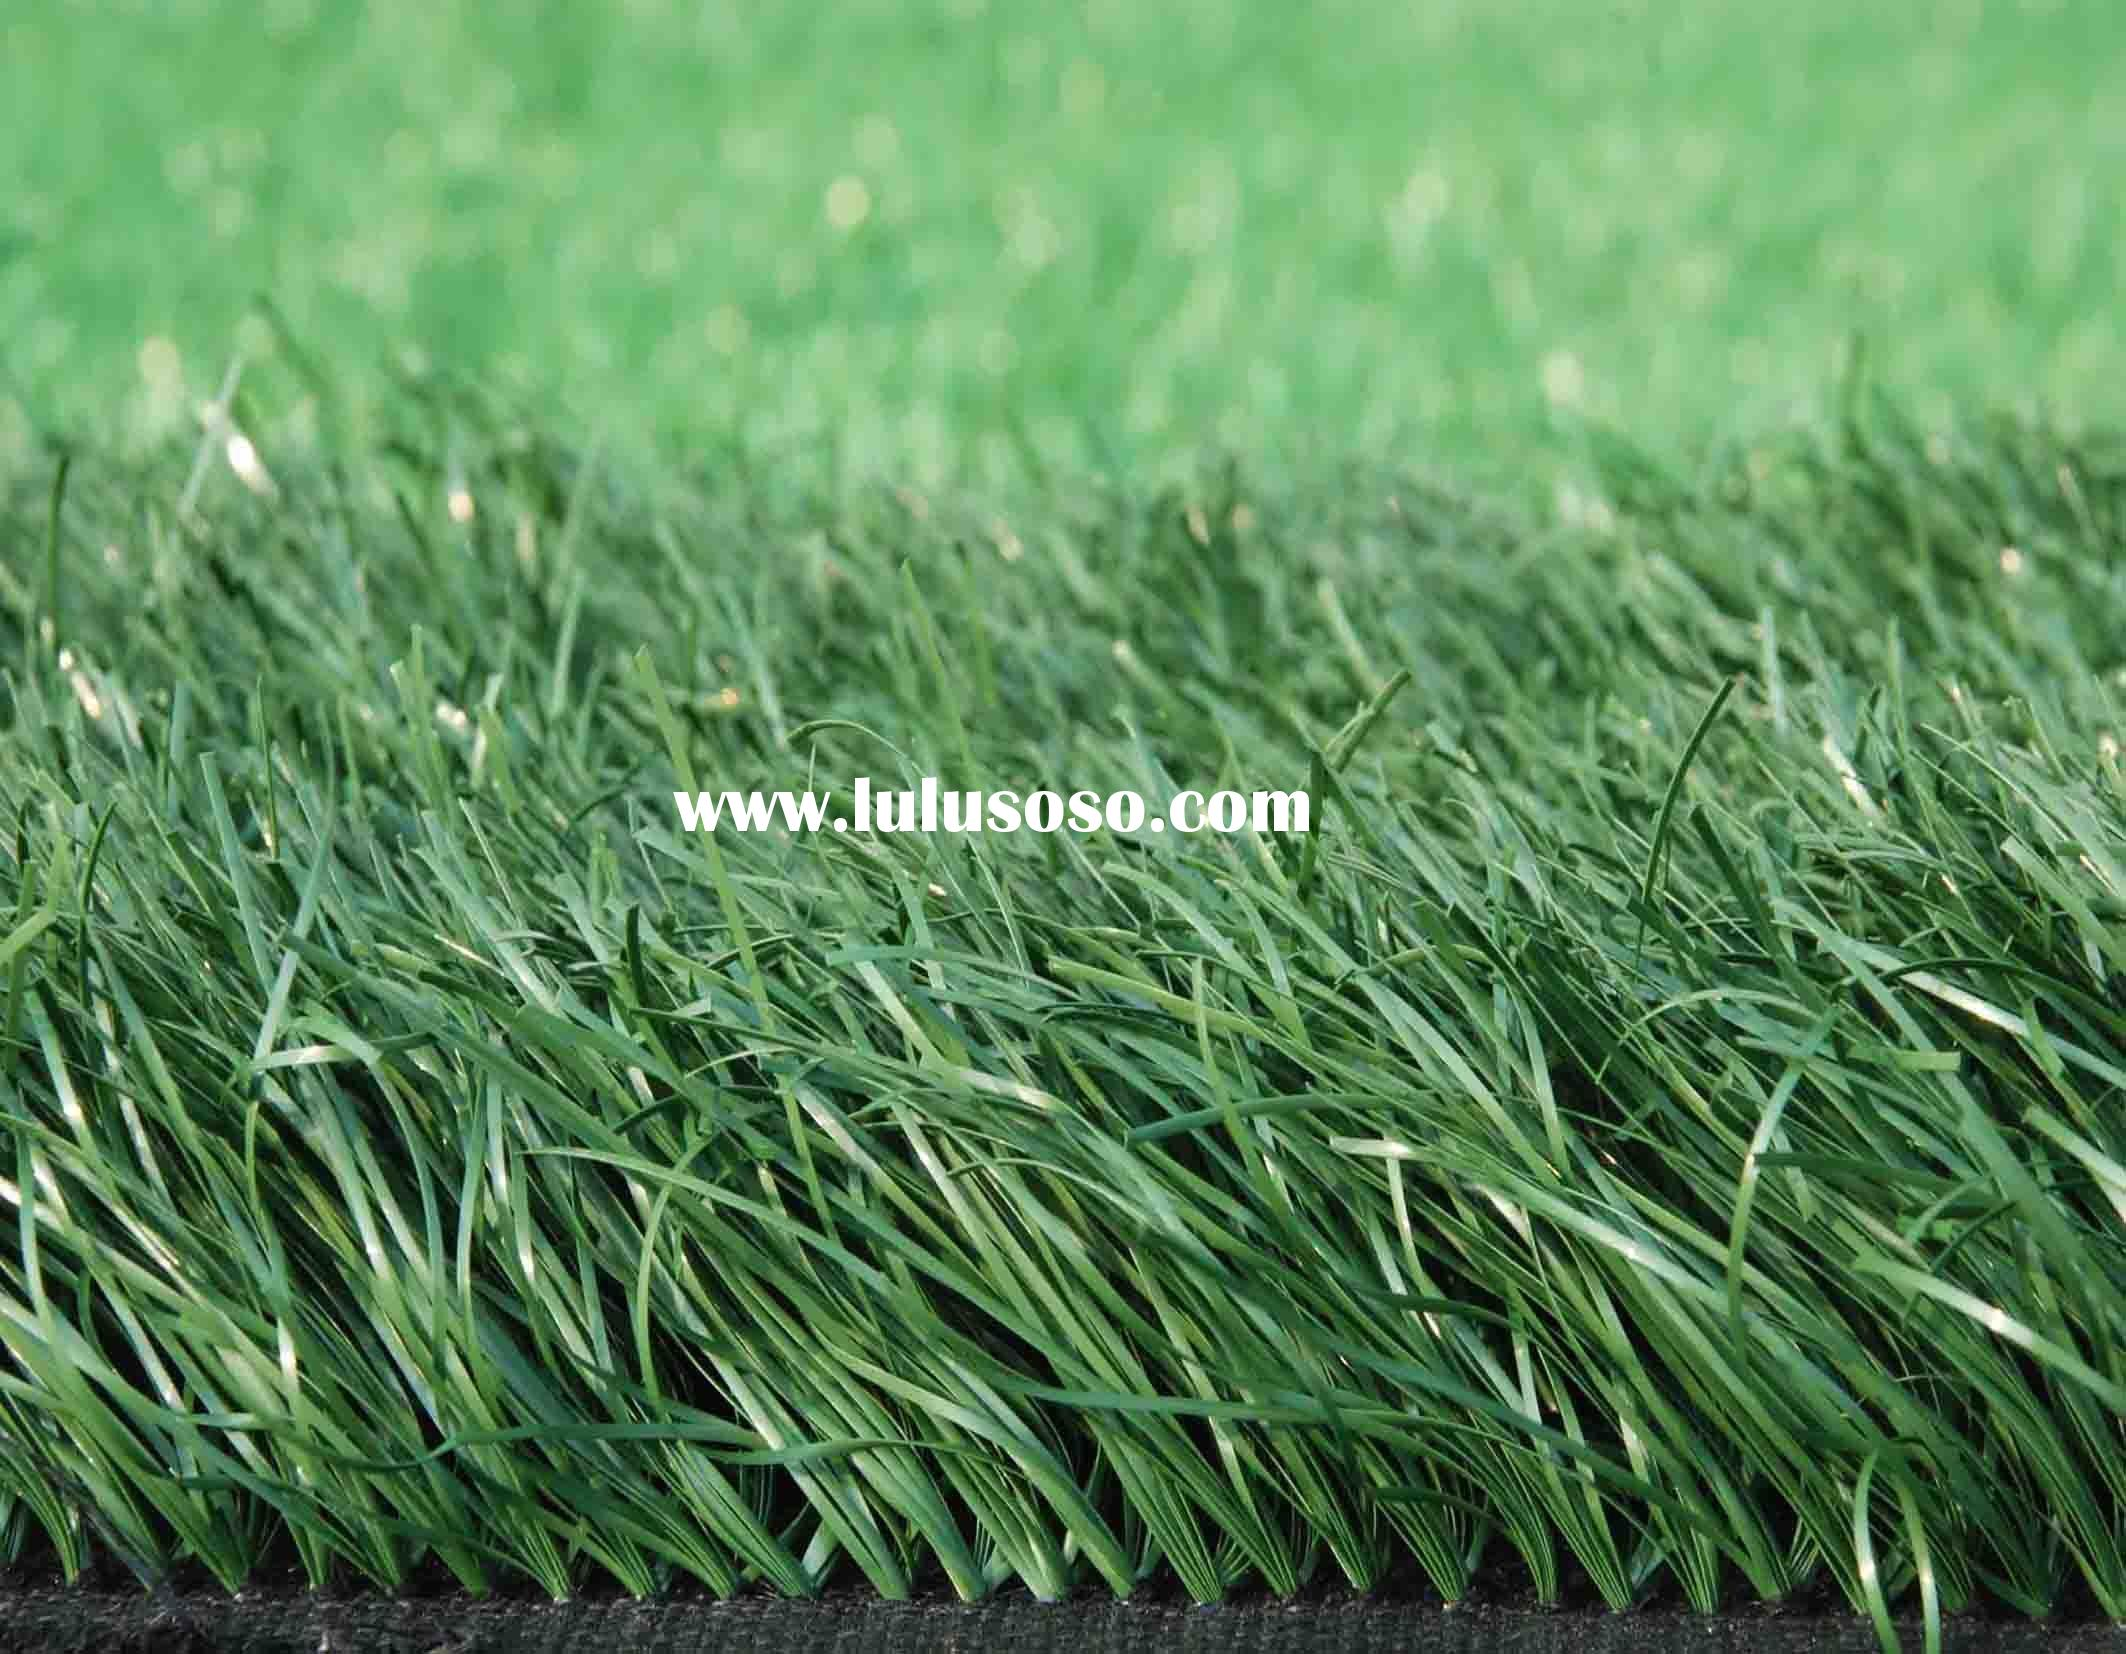 Artificial grass for landscaping and soccer